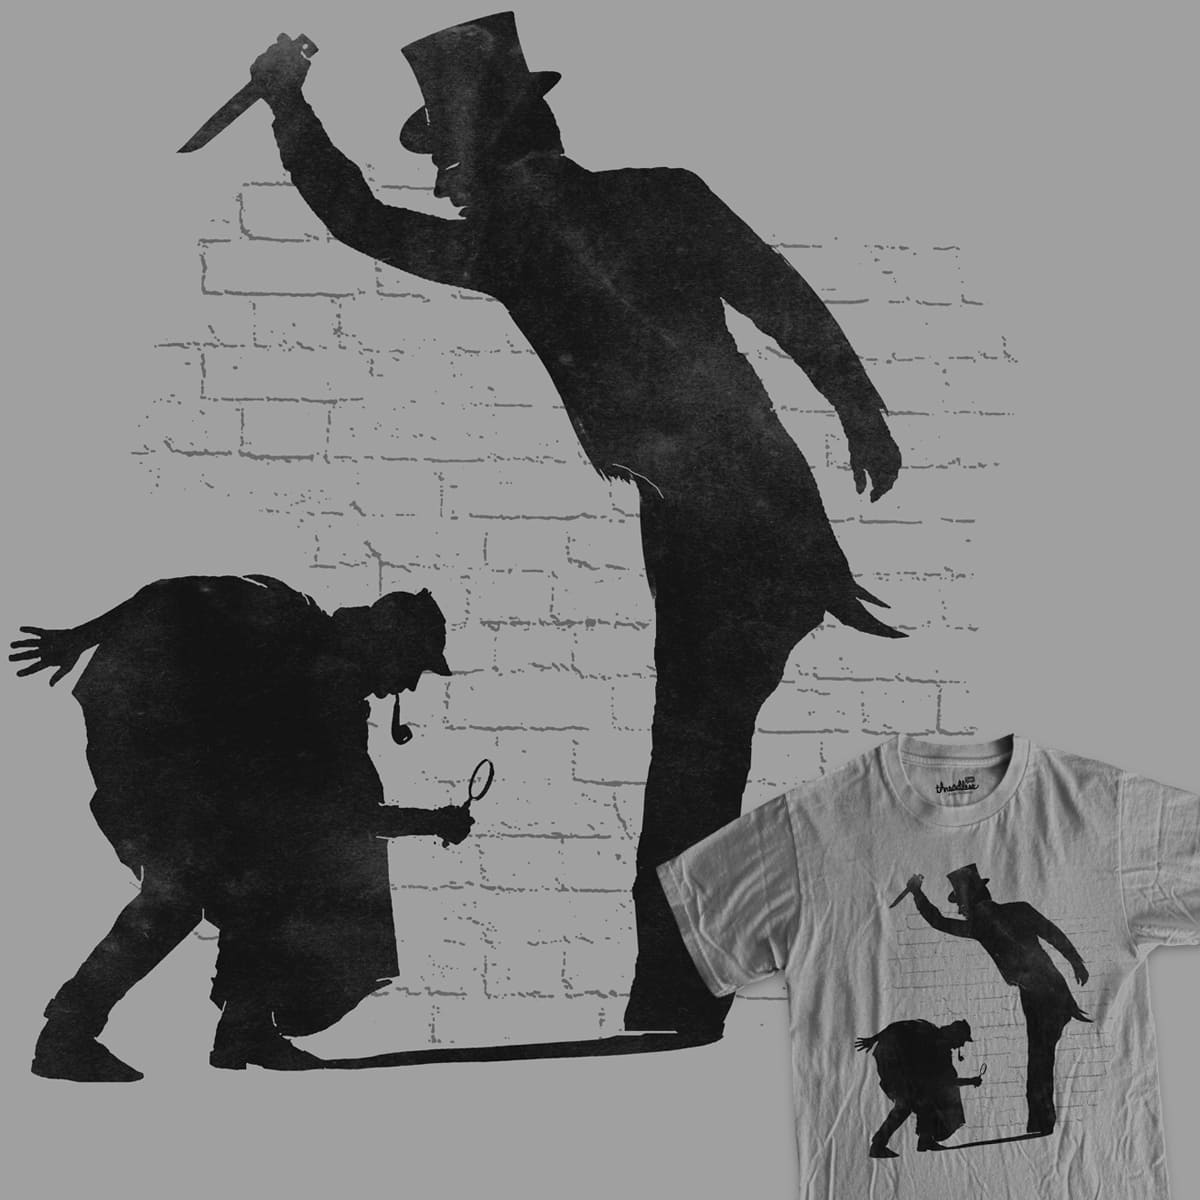 Following the shadows by RL76 on Threadless